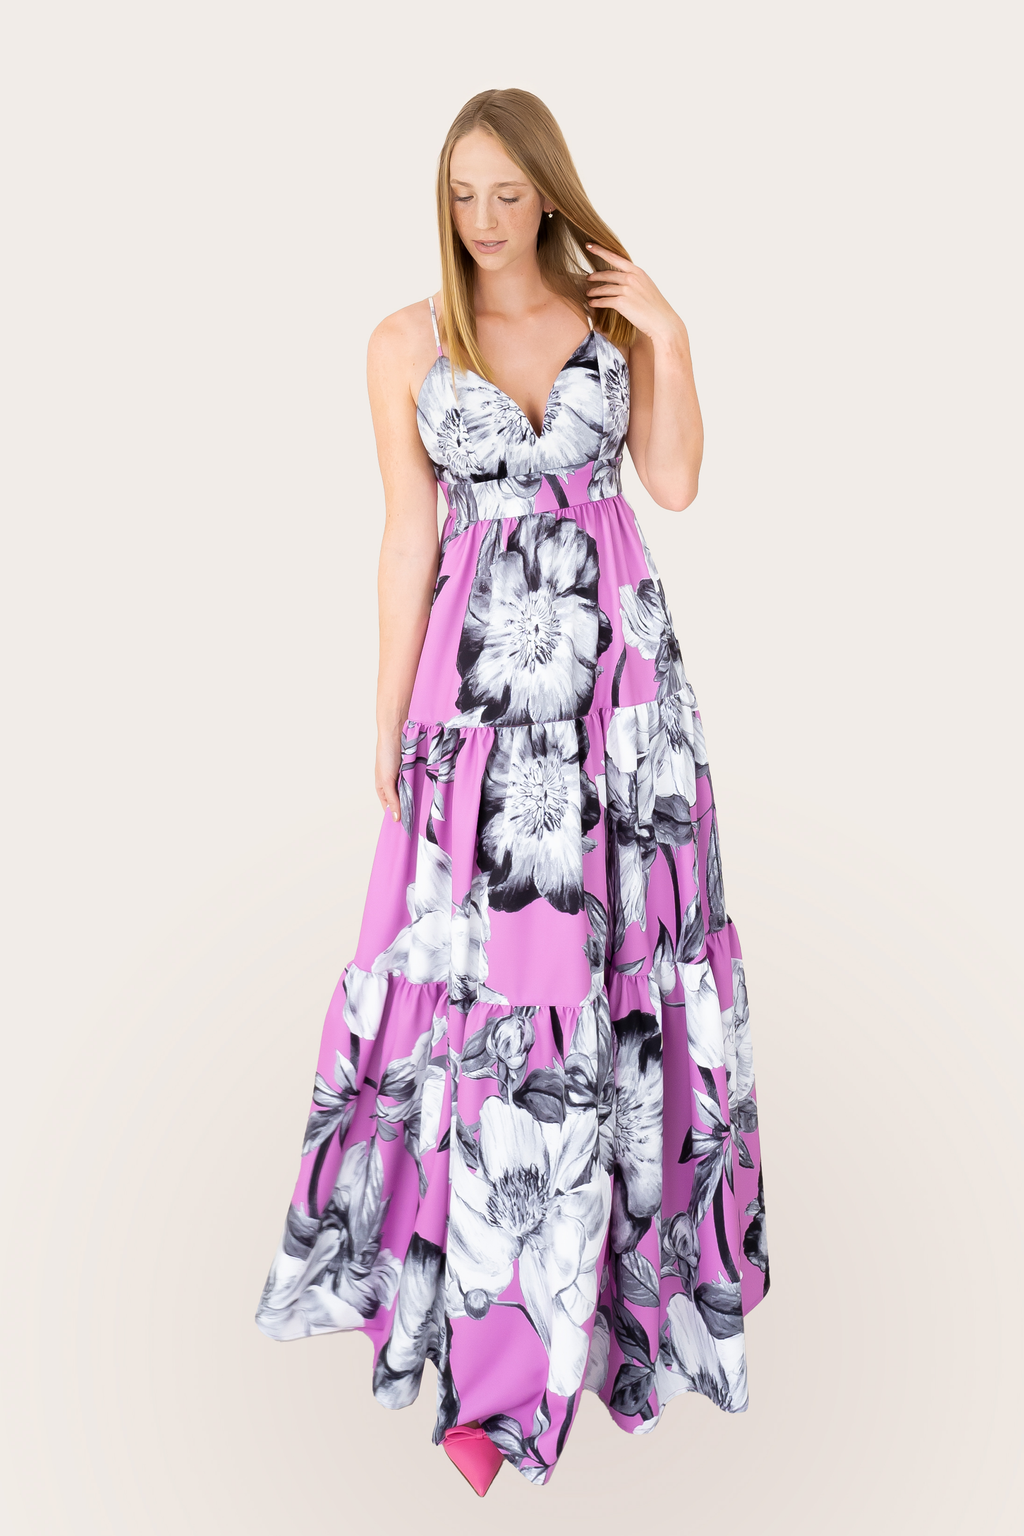 SS Floral Print Chateau Rose Dress - Long